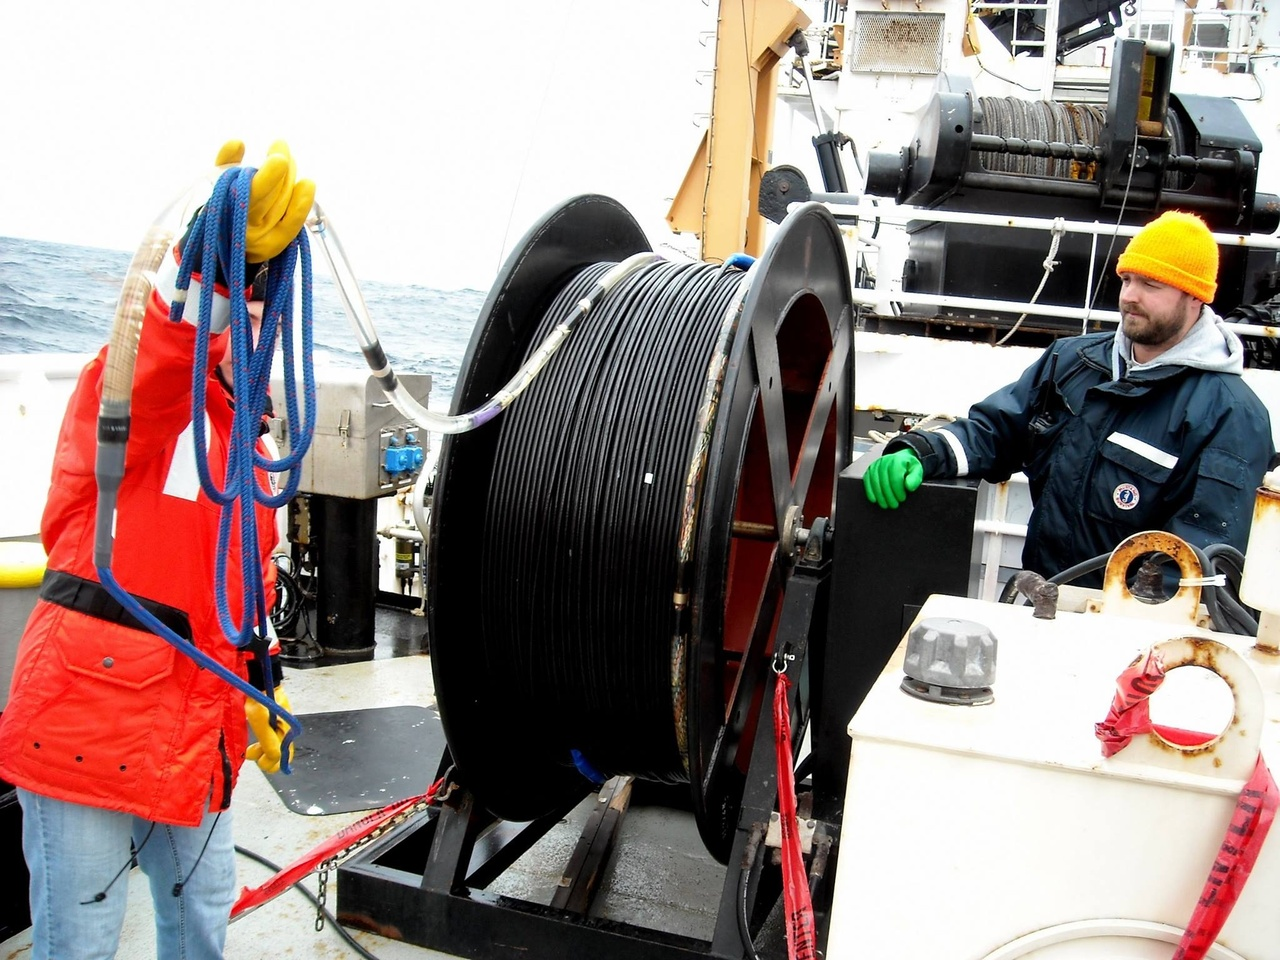 crew spooling hydrophone array on ship